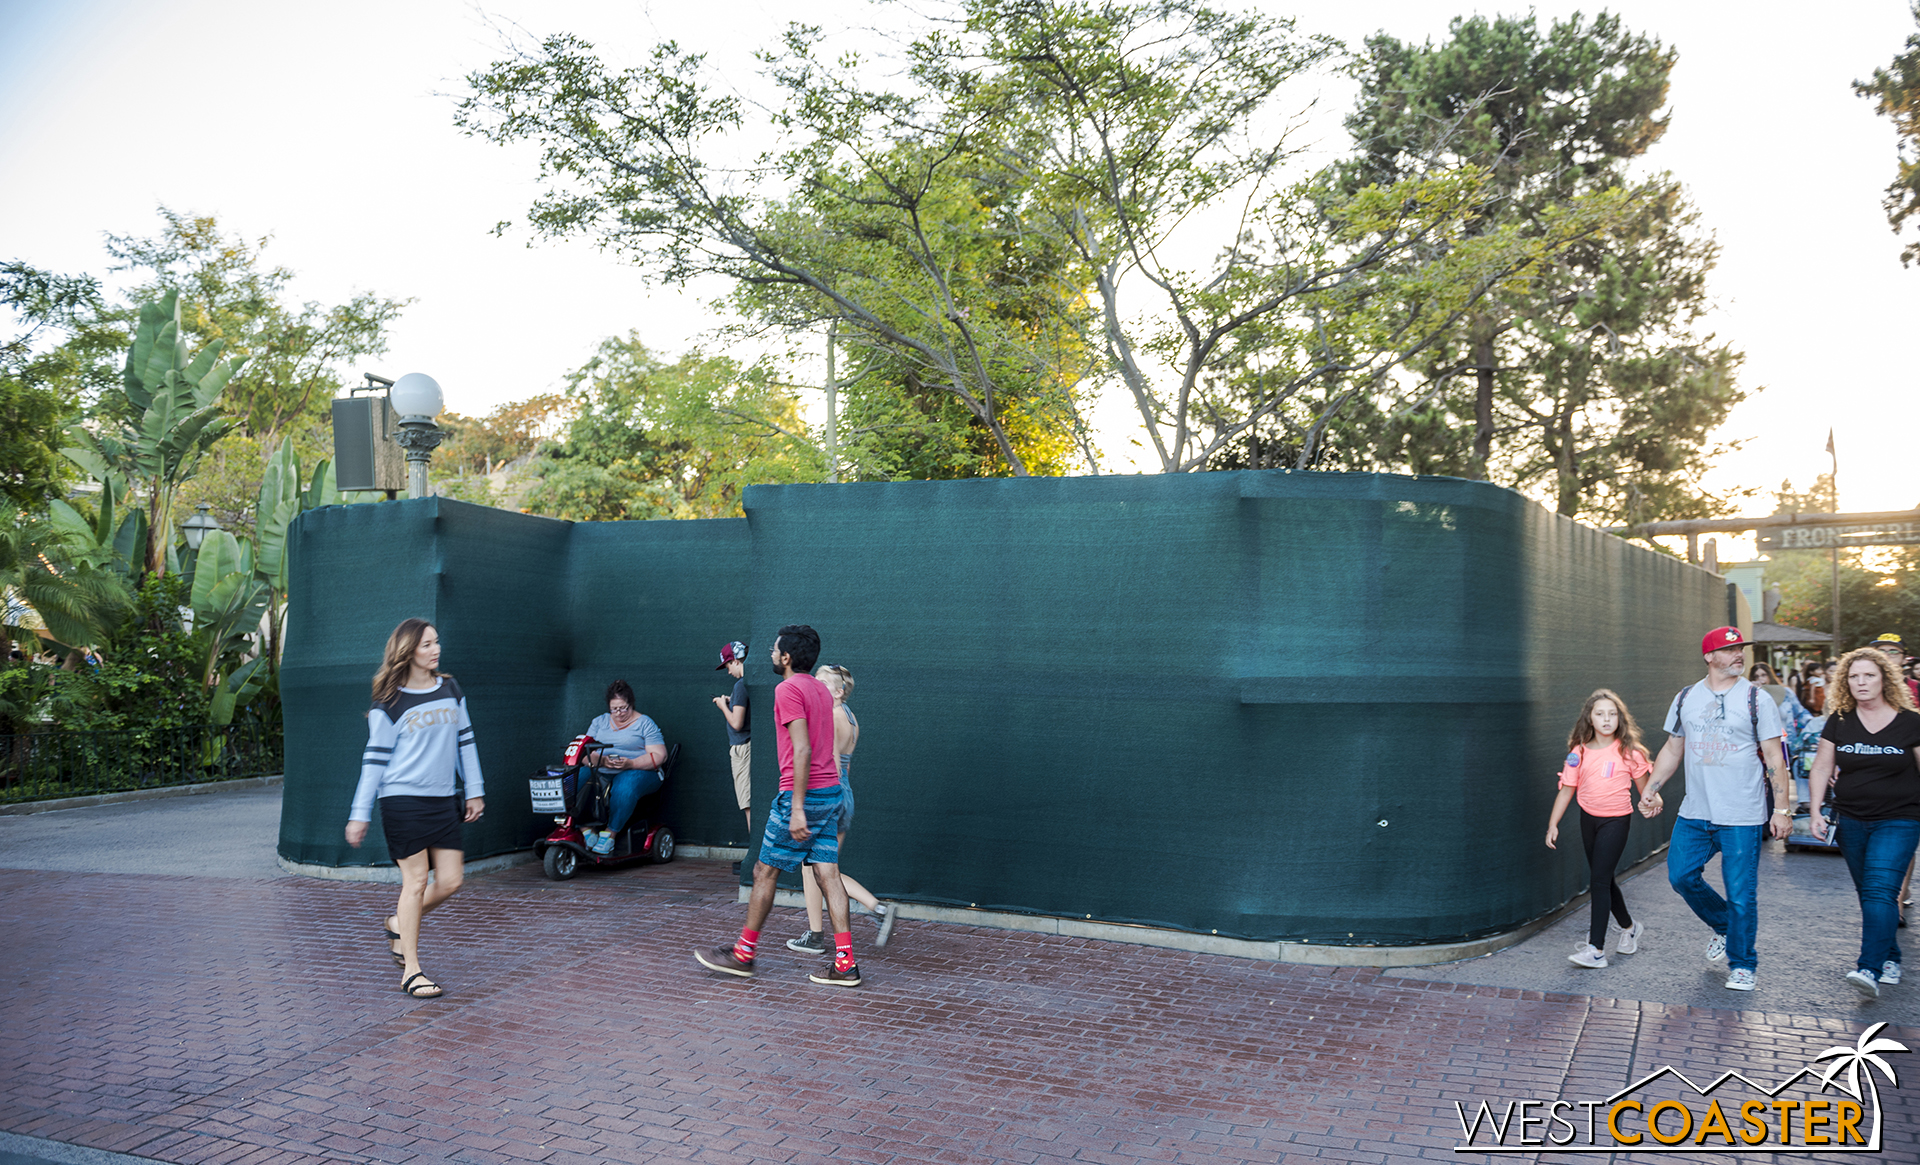 Work fencing is up around the pond between the Adventureland and Frontierland entrances.